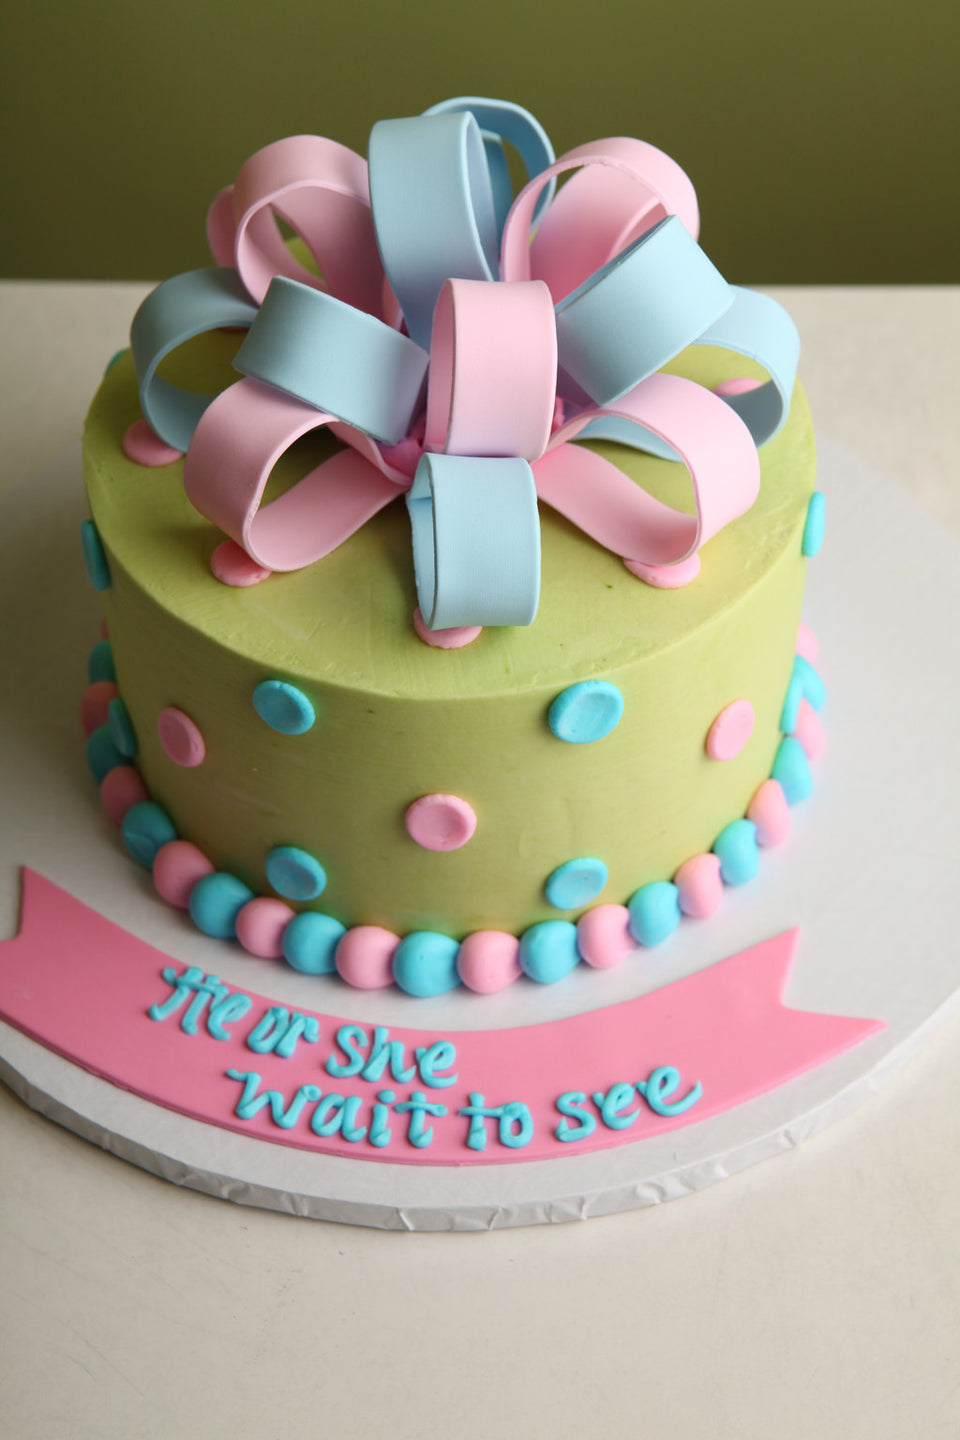 Baby Gender Reveal #175Baby